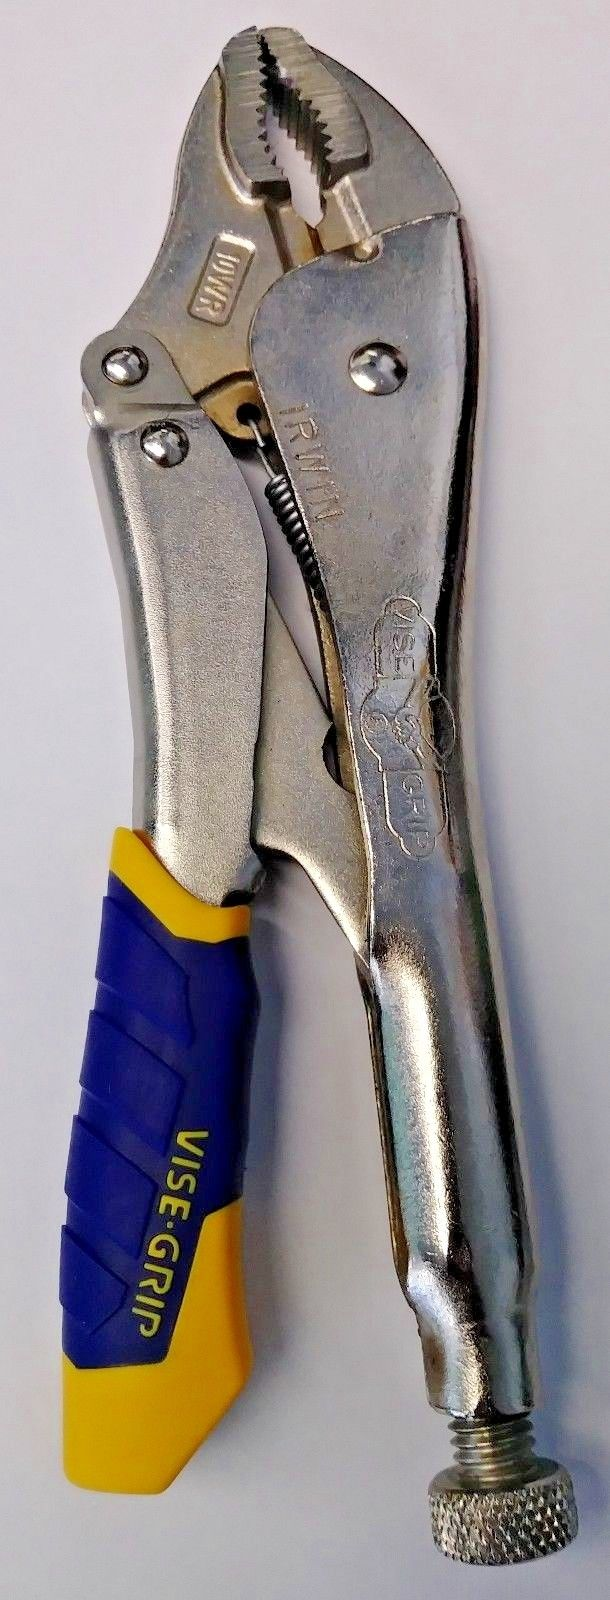 Irwin Vise-Grip 10WR Curved Jaw Locking Plier With Wire Cutter & One Grip (Bulk)